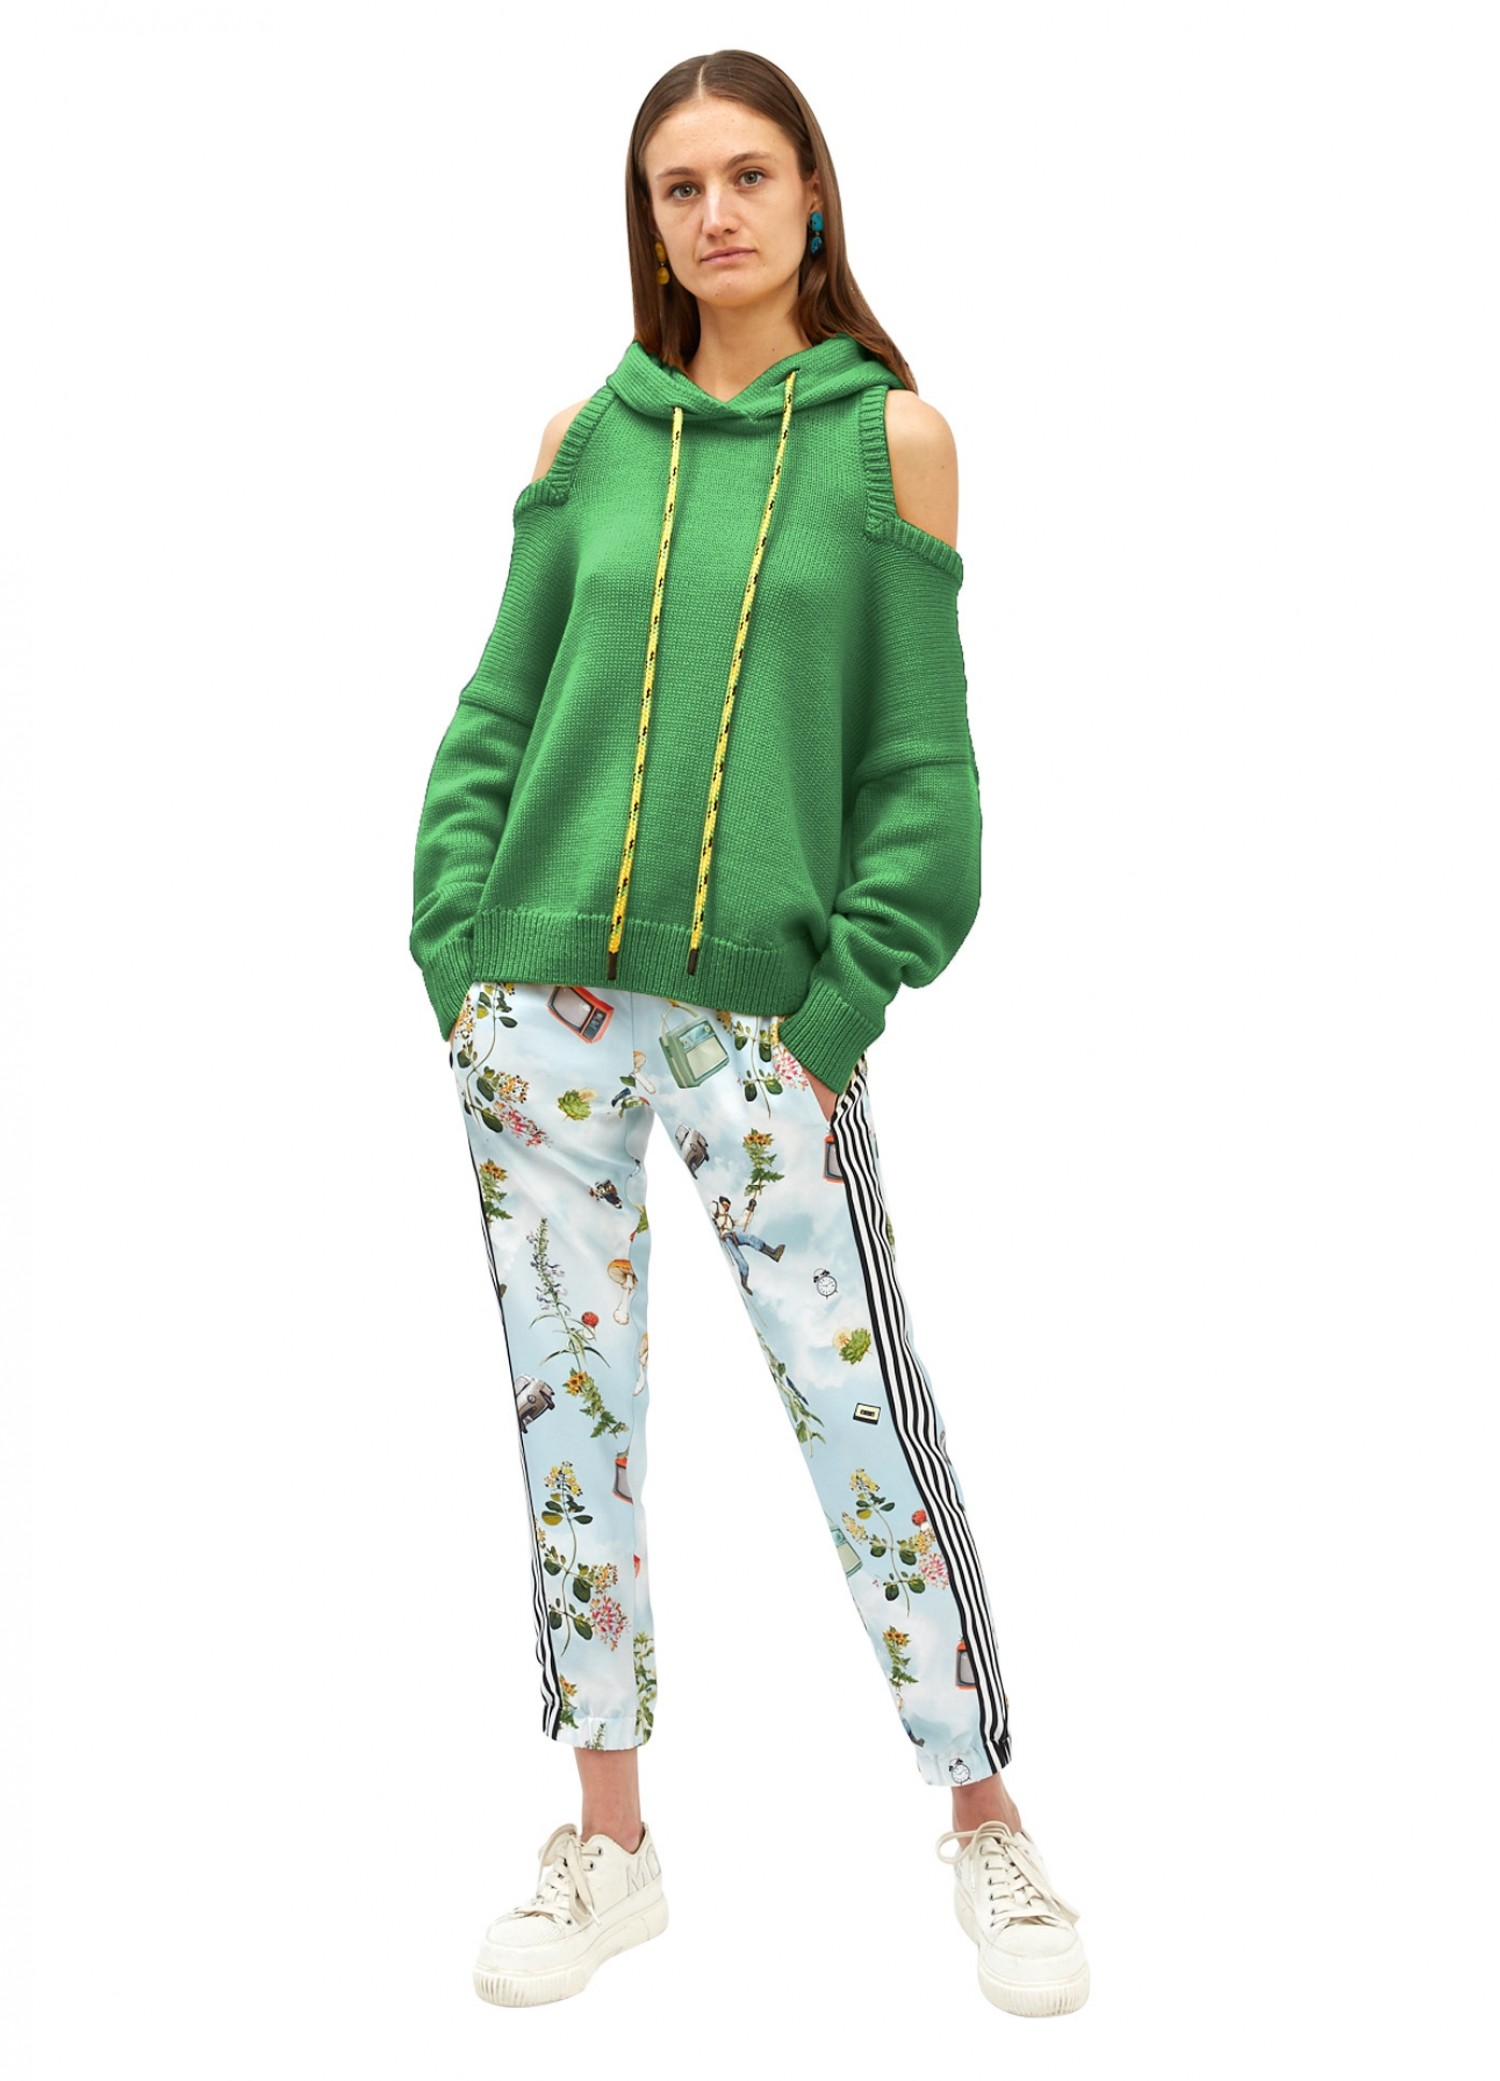 MONSE Halter Knit Hoodie in Grass Green on Model Full Front View